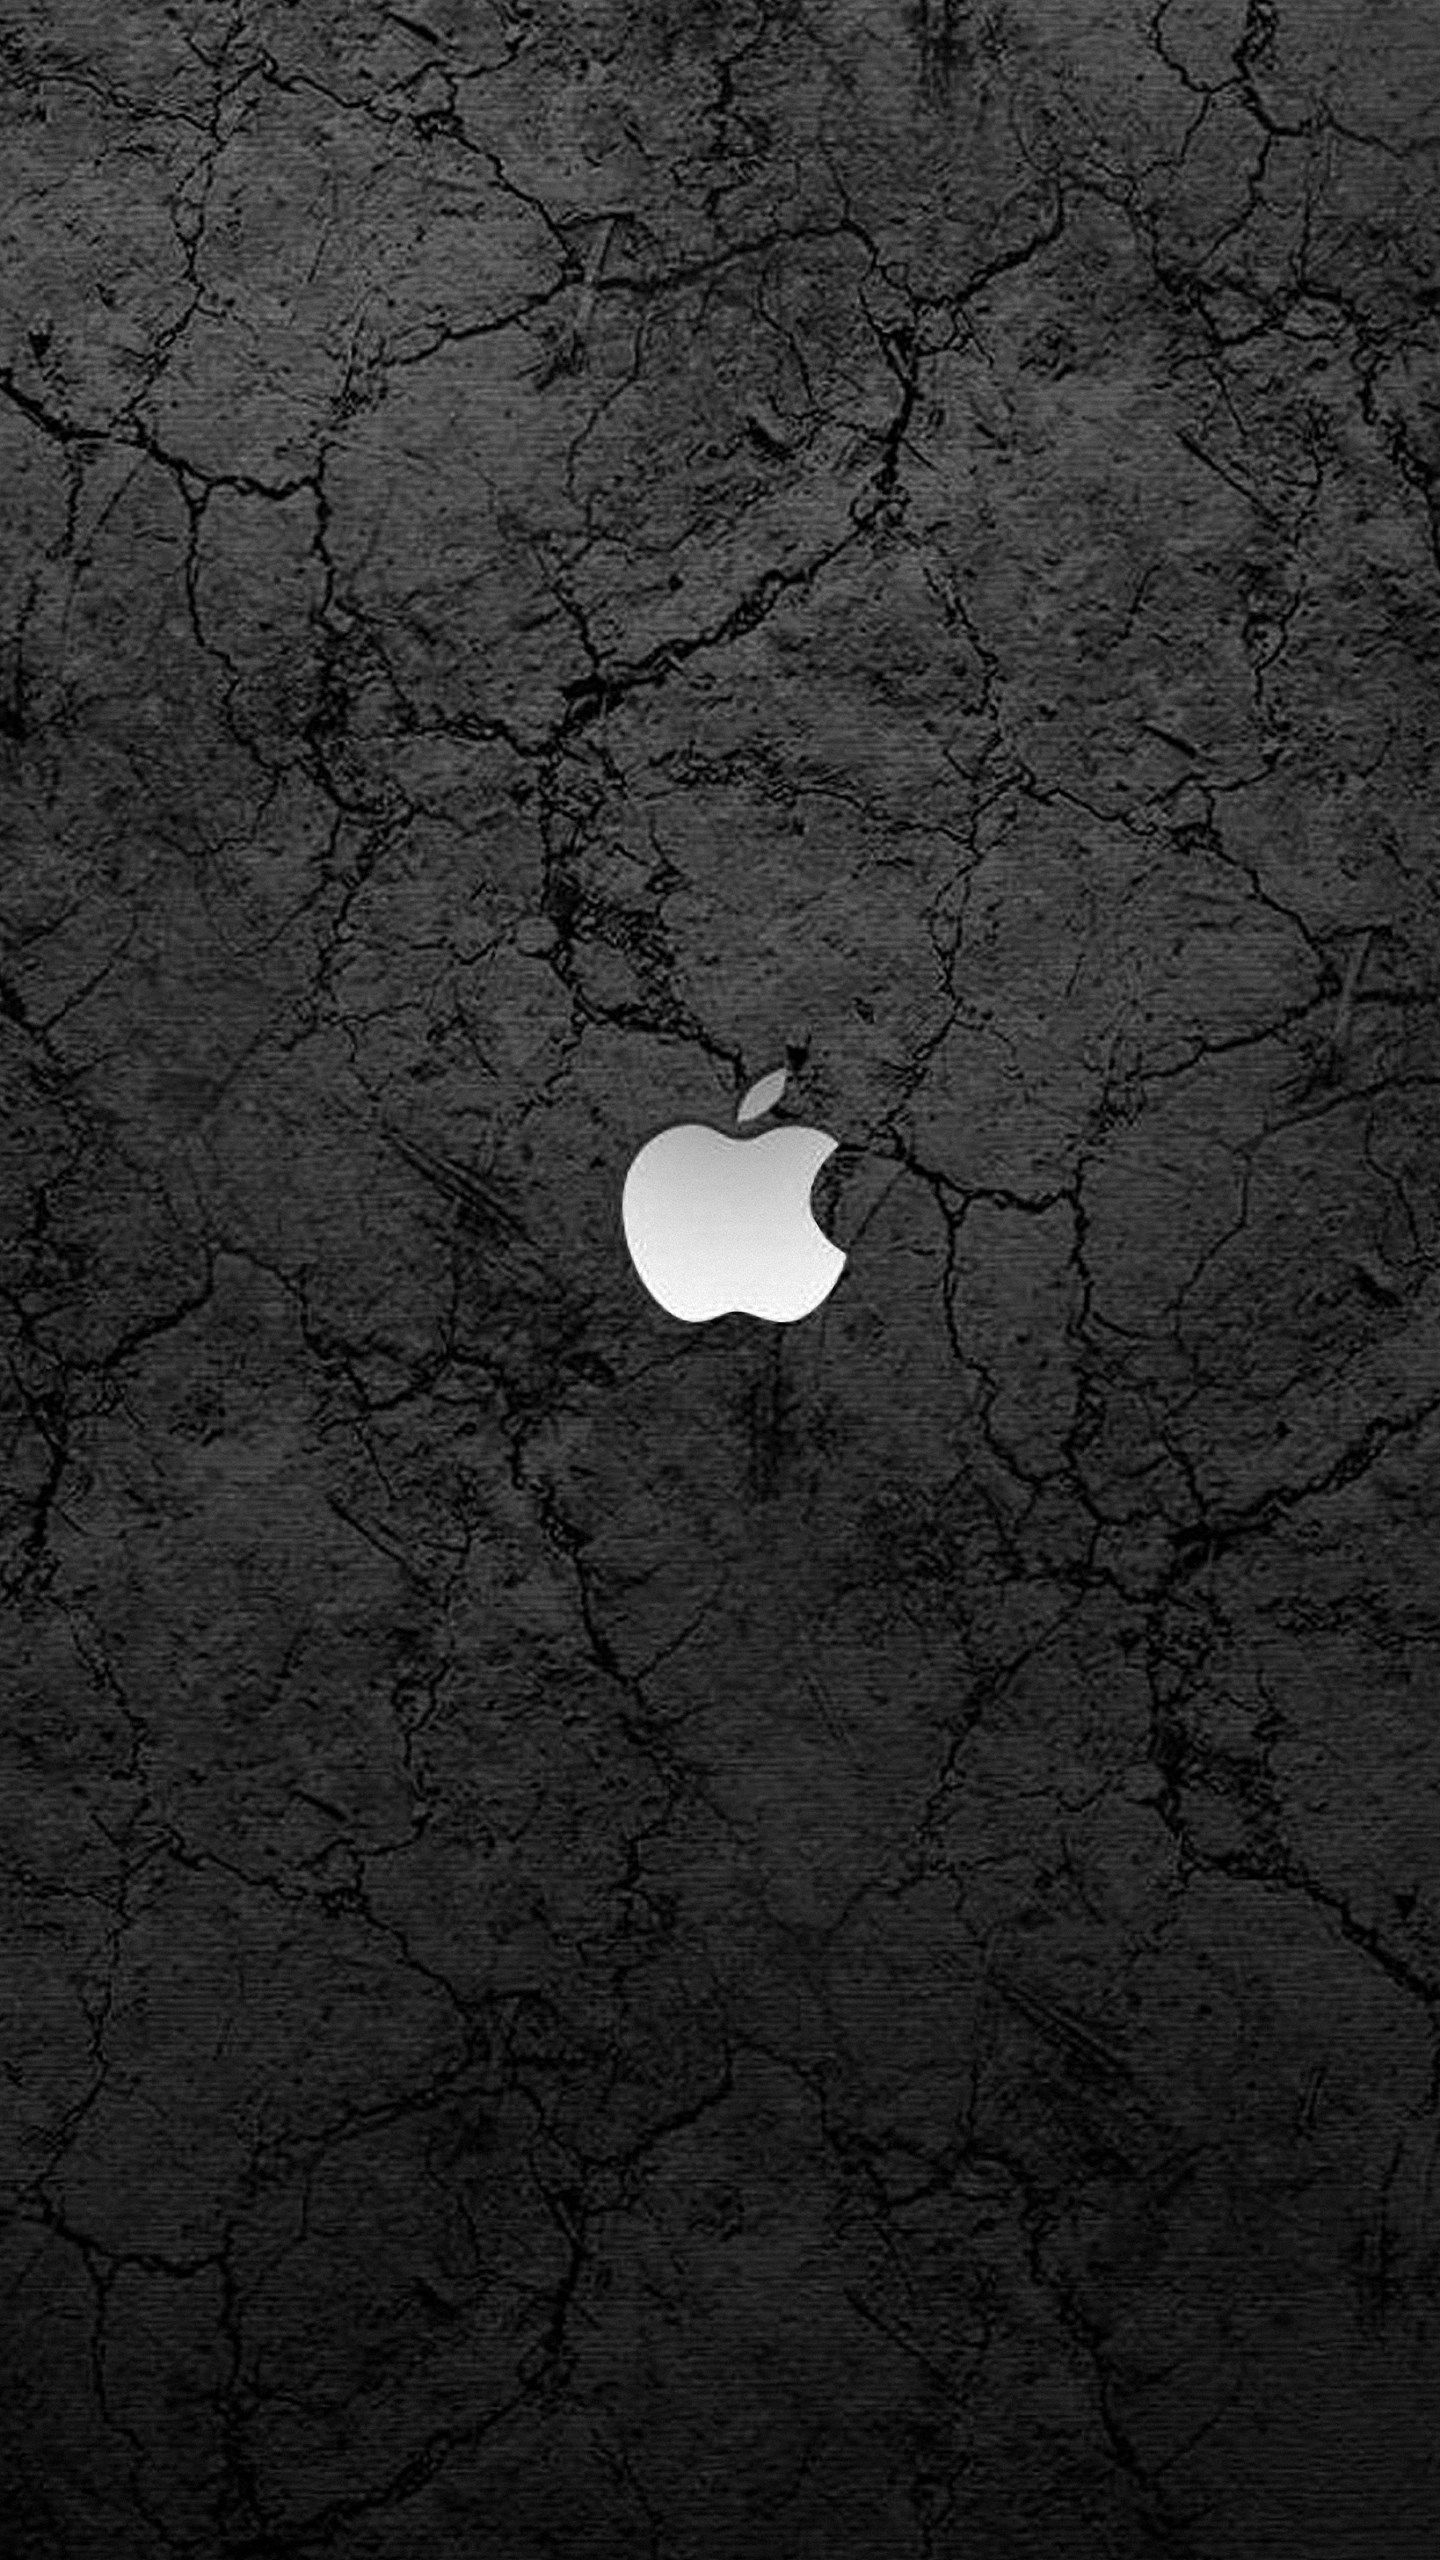 Iphone S Wallpapers Top Free Iphone S Backgrounds Wallpaperaccess